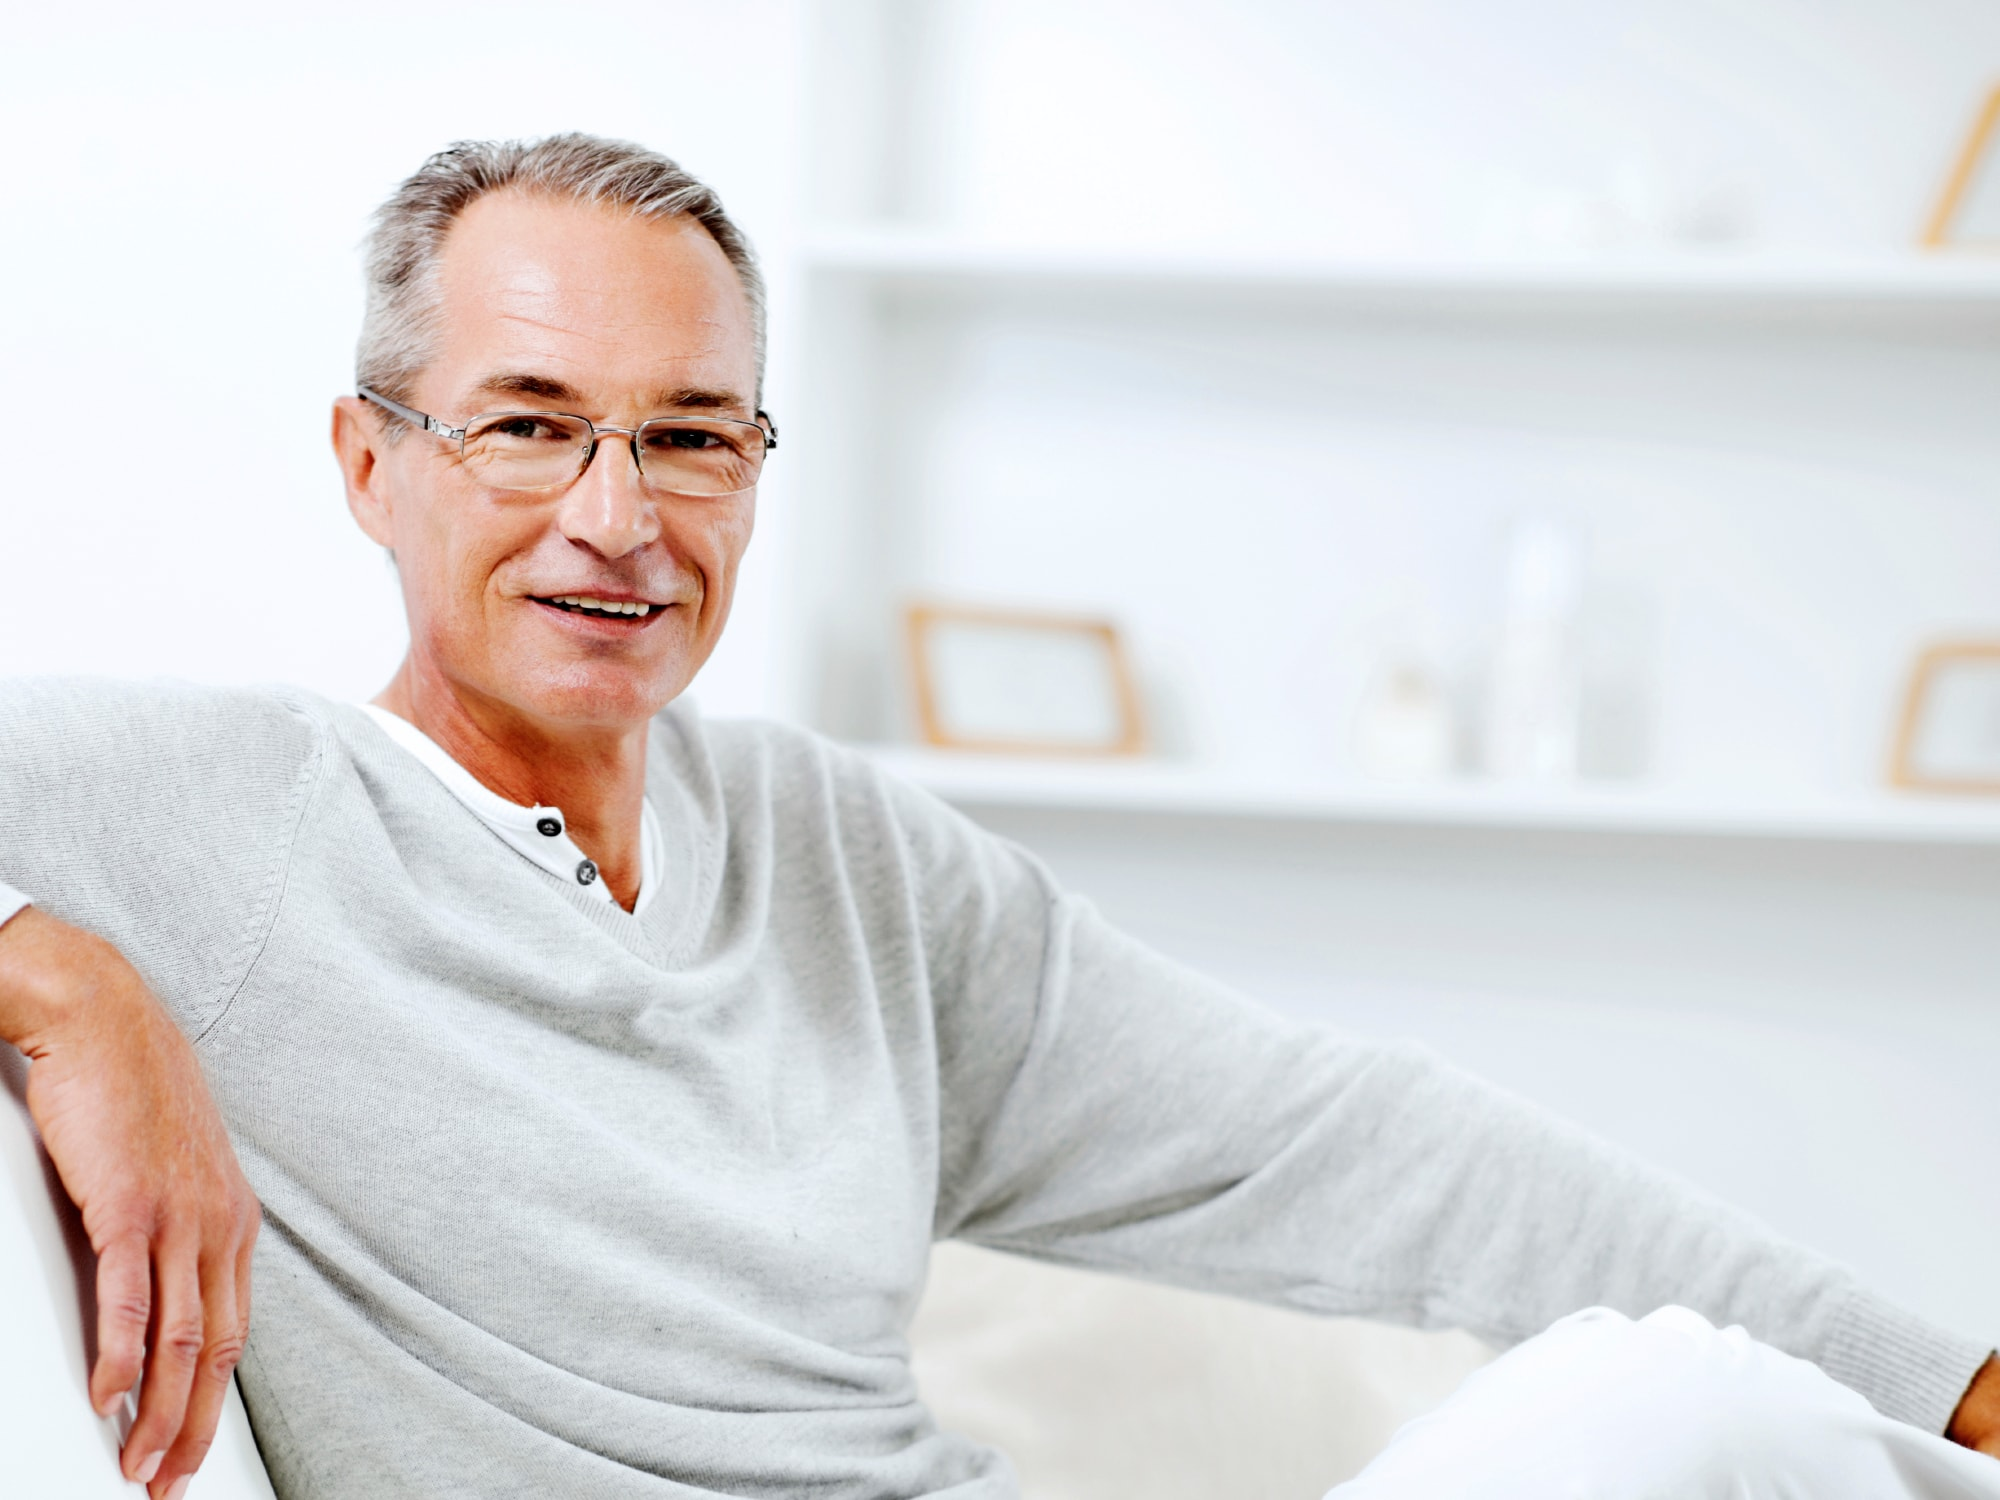 Mature man using sitting on the sofa at home and looking at the camera.